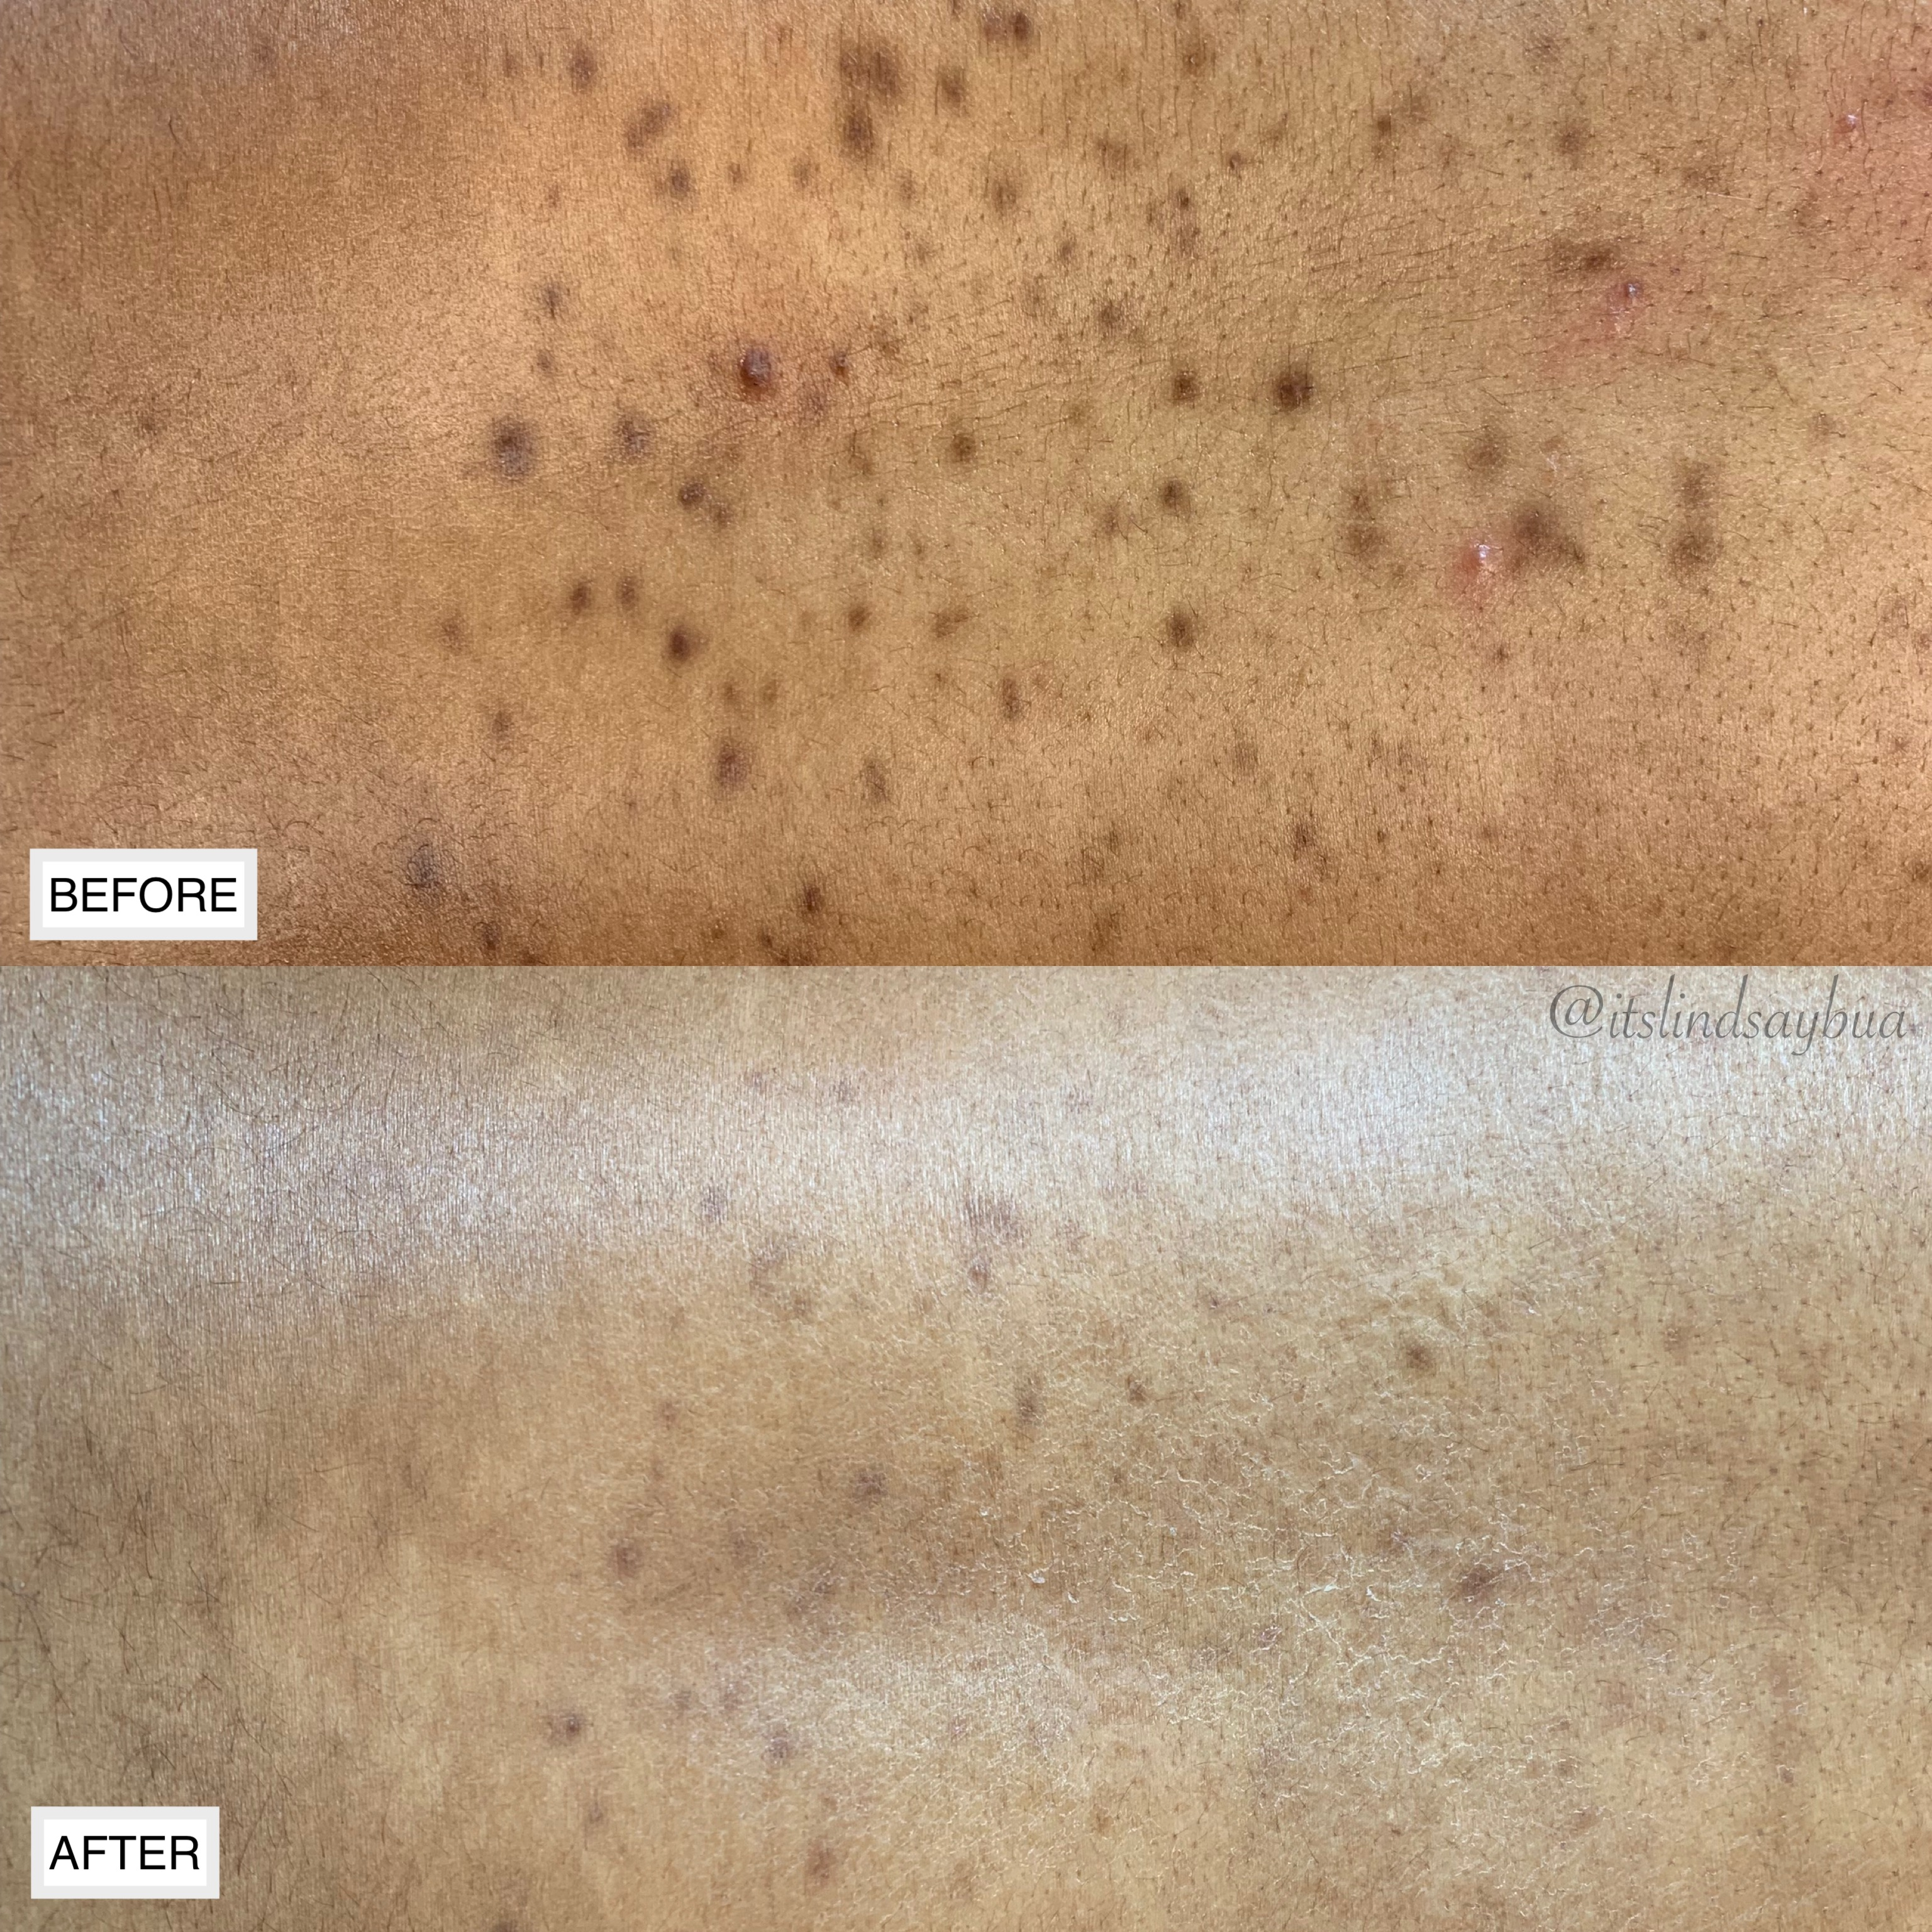 Before and after a series of back facial treatments to clear current breakouts + smooth and even the skin tone.